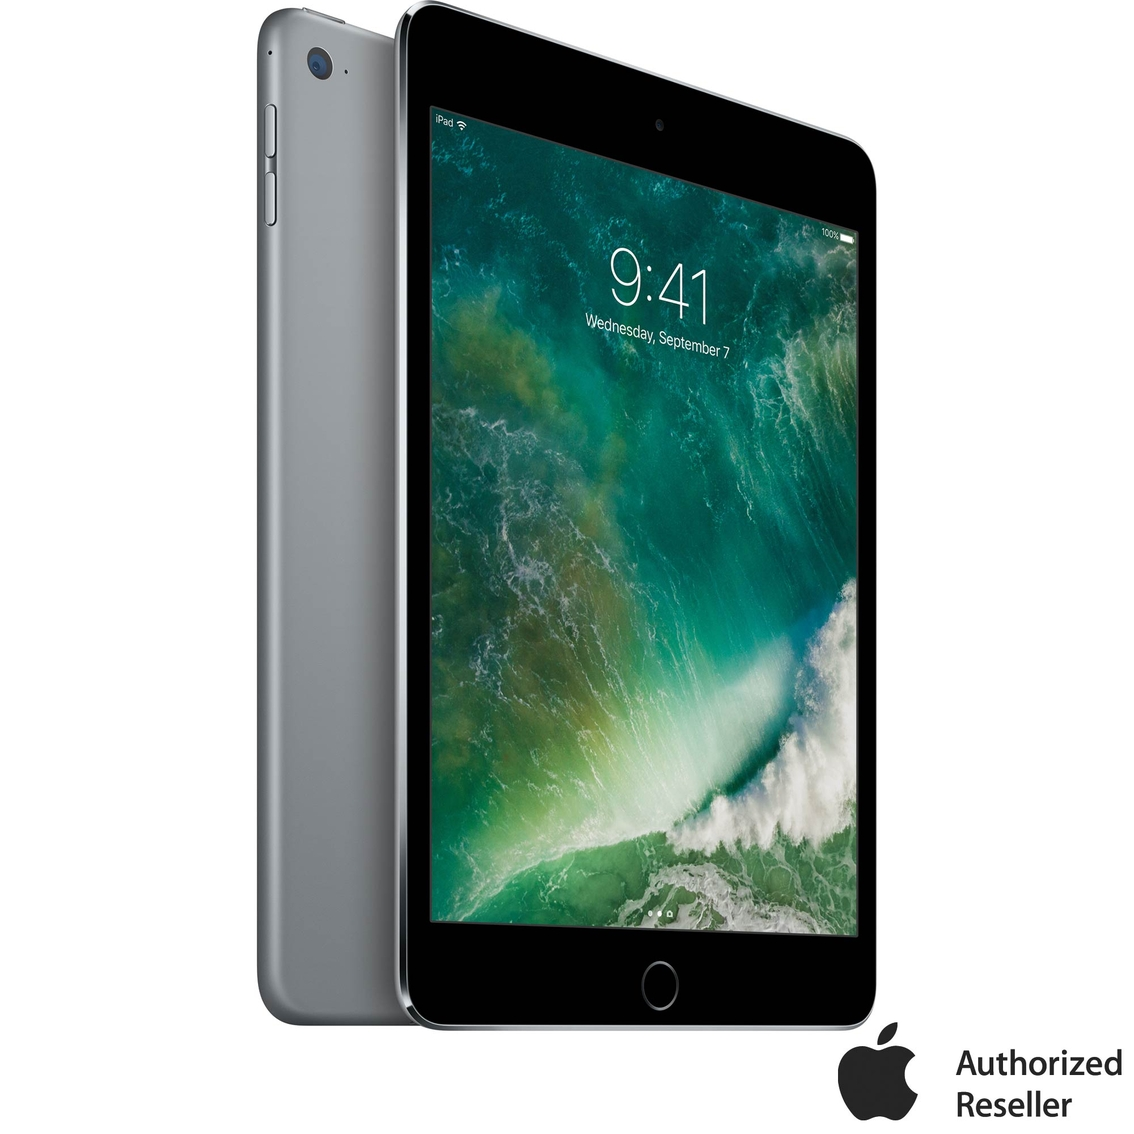 Apple Ipad Mini 4 With Wifi Ipads Electronics Shop The Exchange